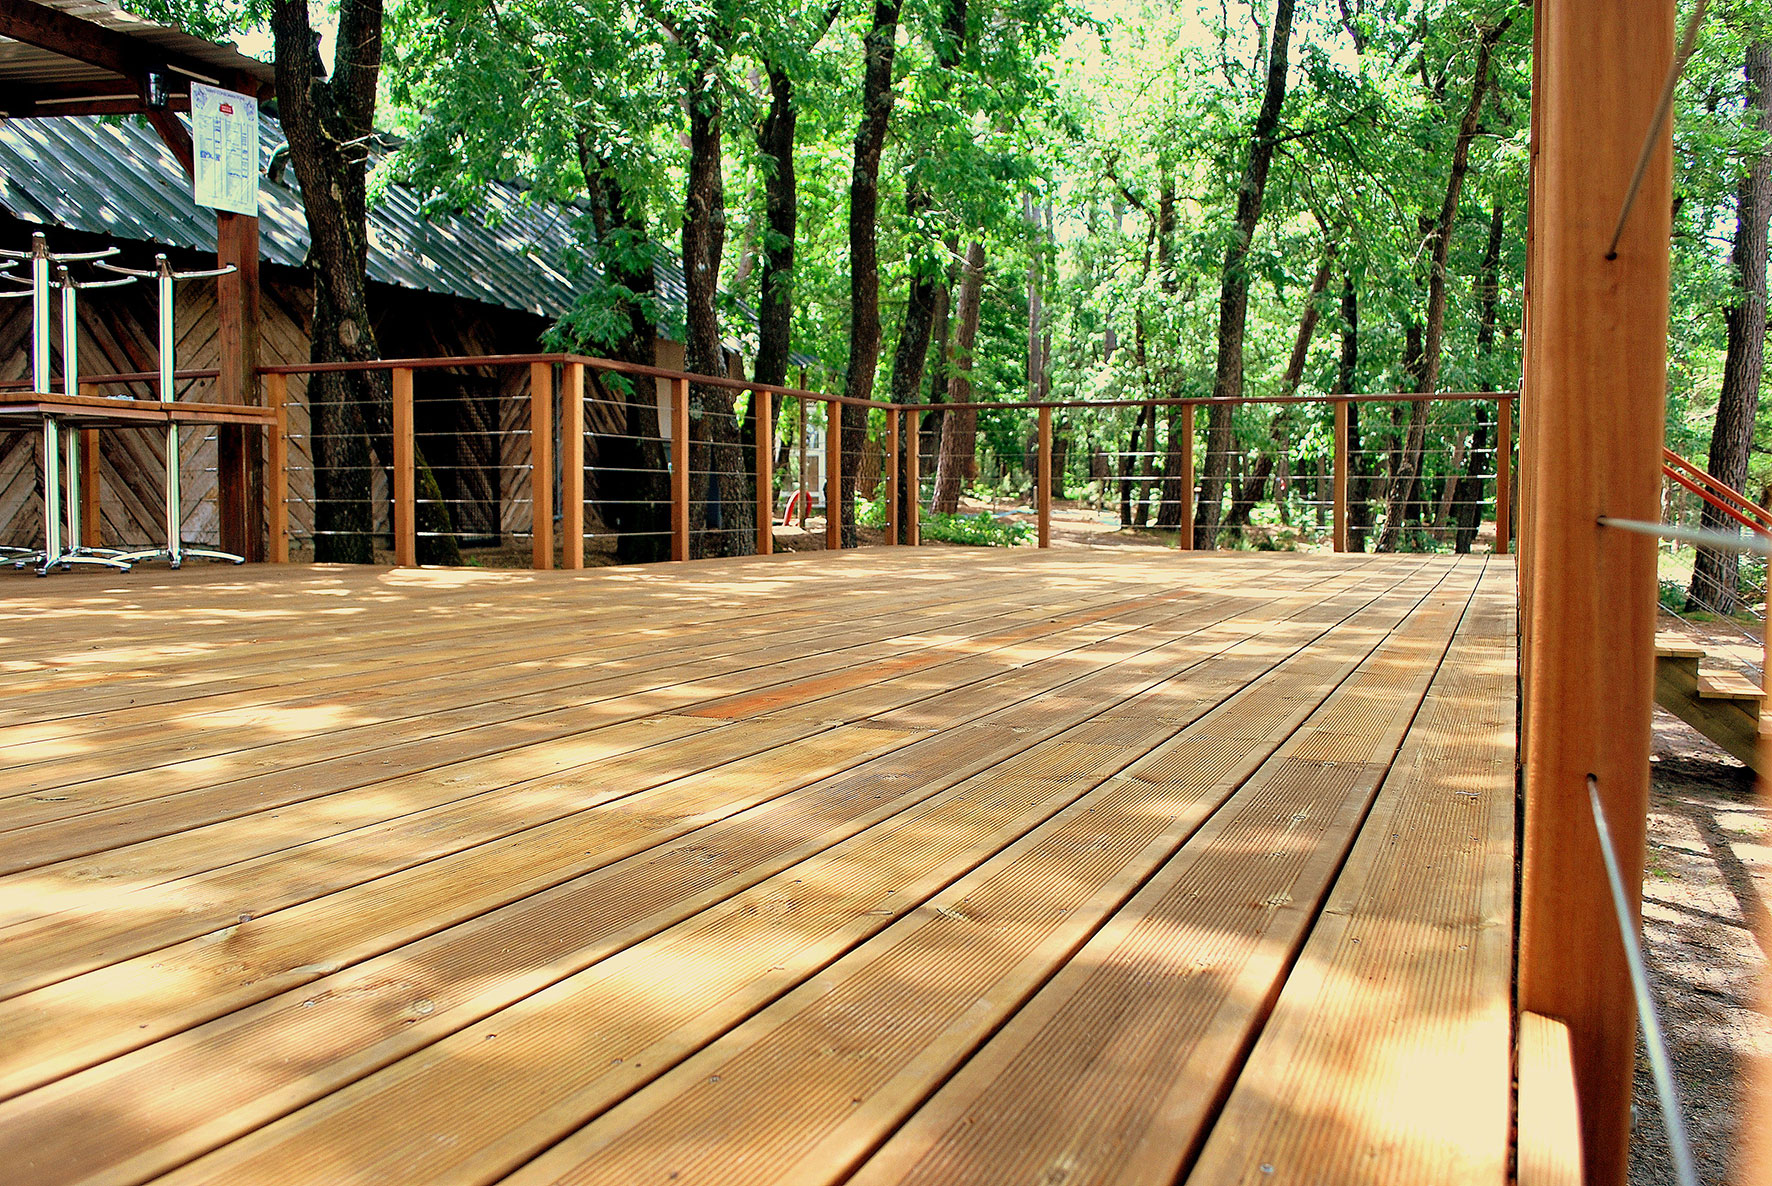 2a2w All Around The Wood World Lames De Terrasse